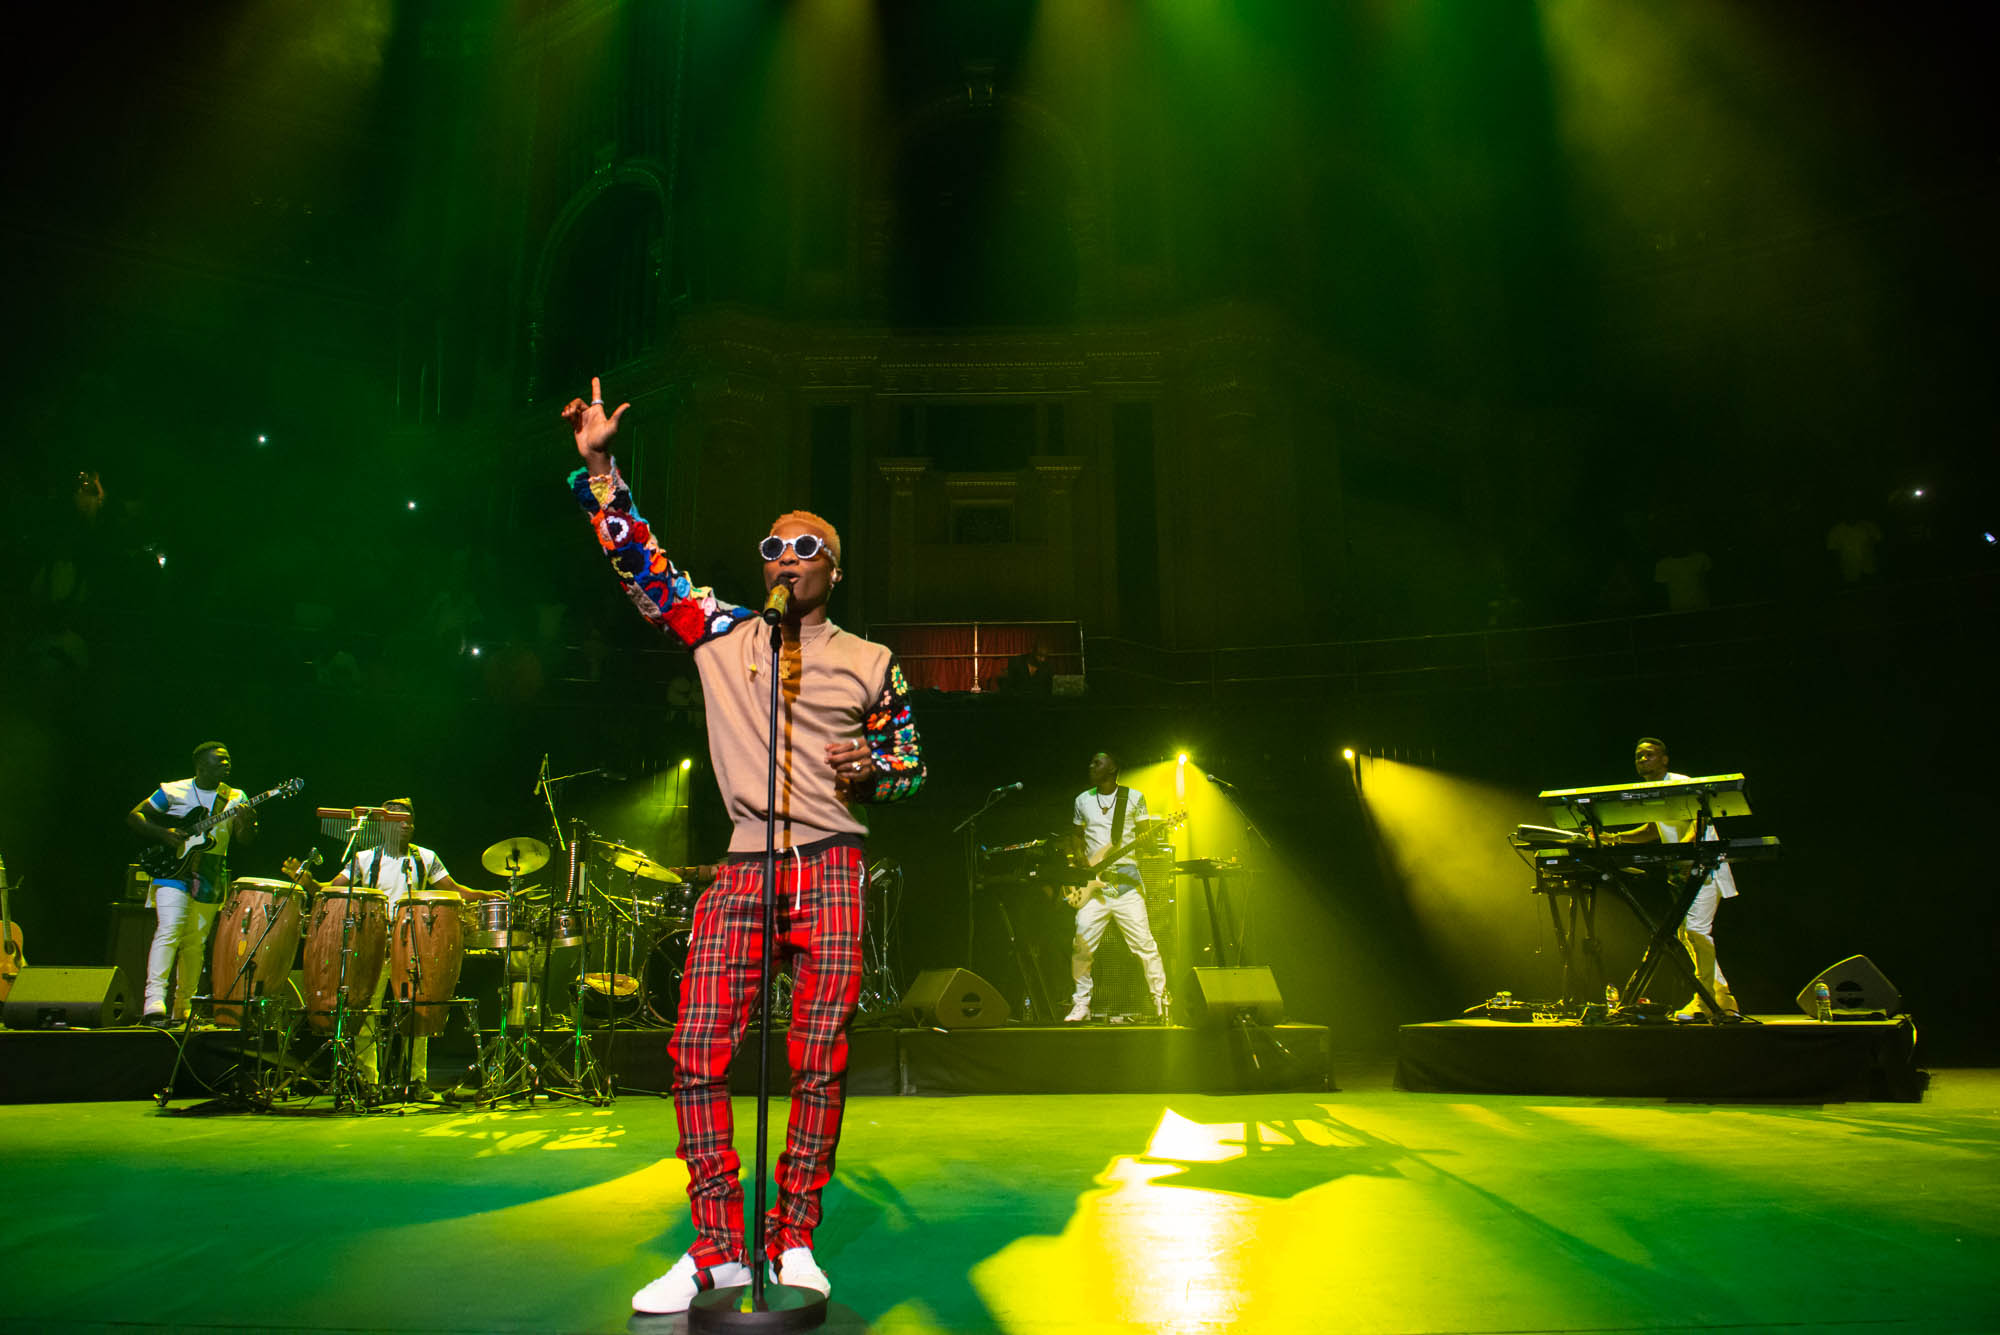 London, United Kingdom. 29th September 2017. WIZKID Performing Live At The Royal Albert Hall. Photographed Michael Tubes.